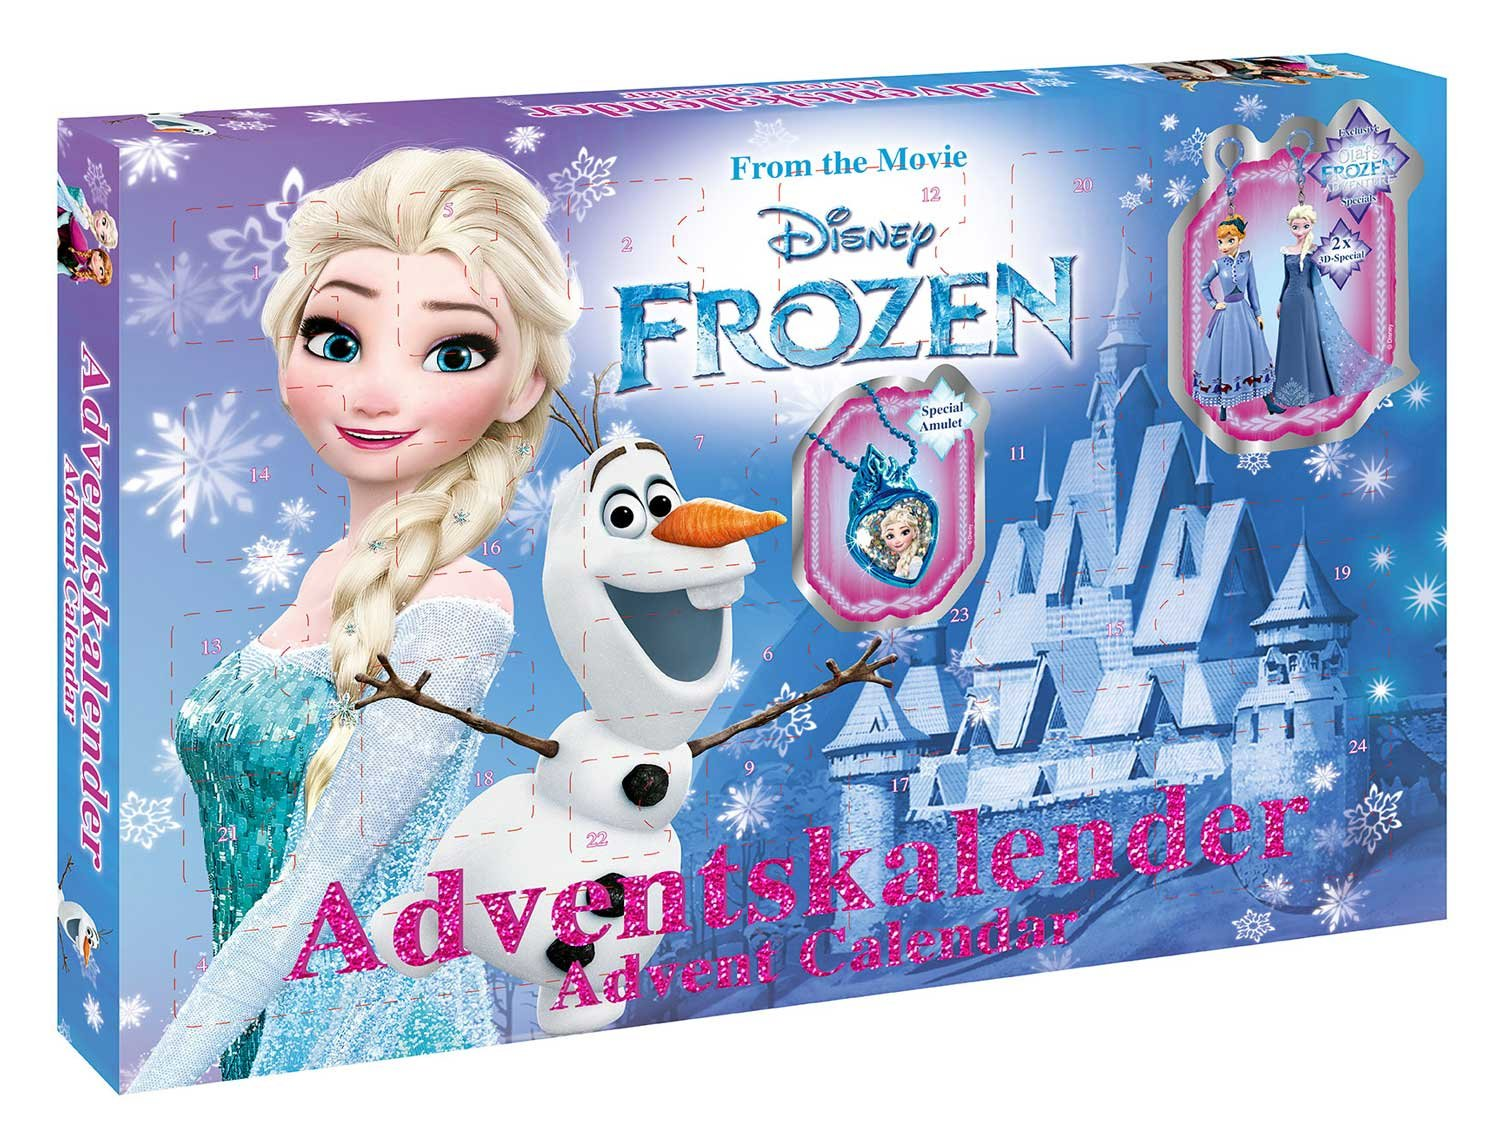 Craze 57309 Calendario de Adviento Disney Frozen Craze_57309